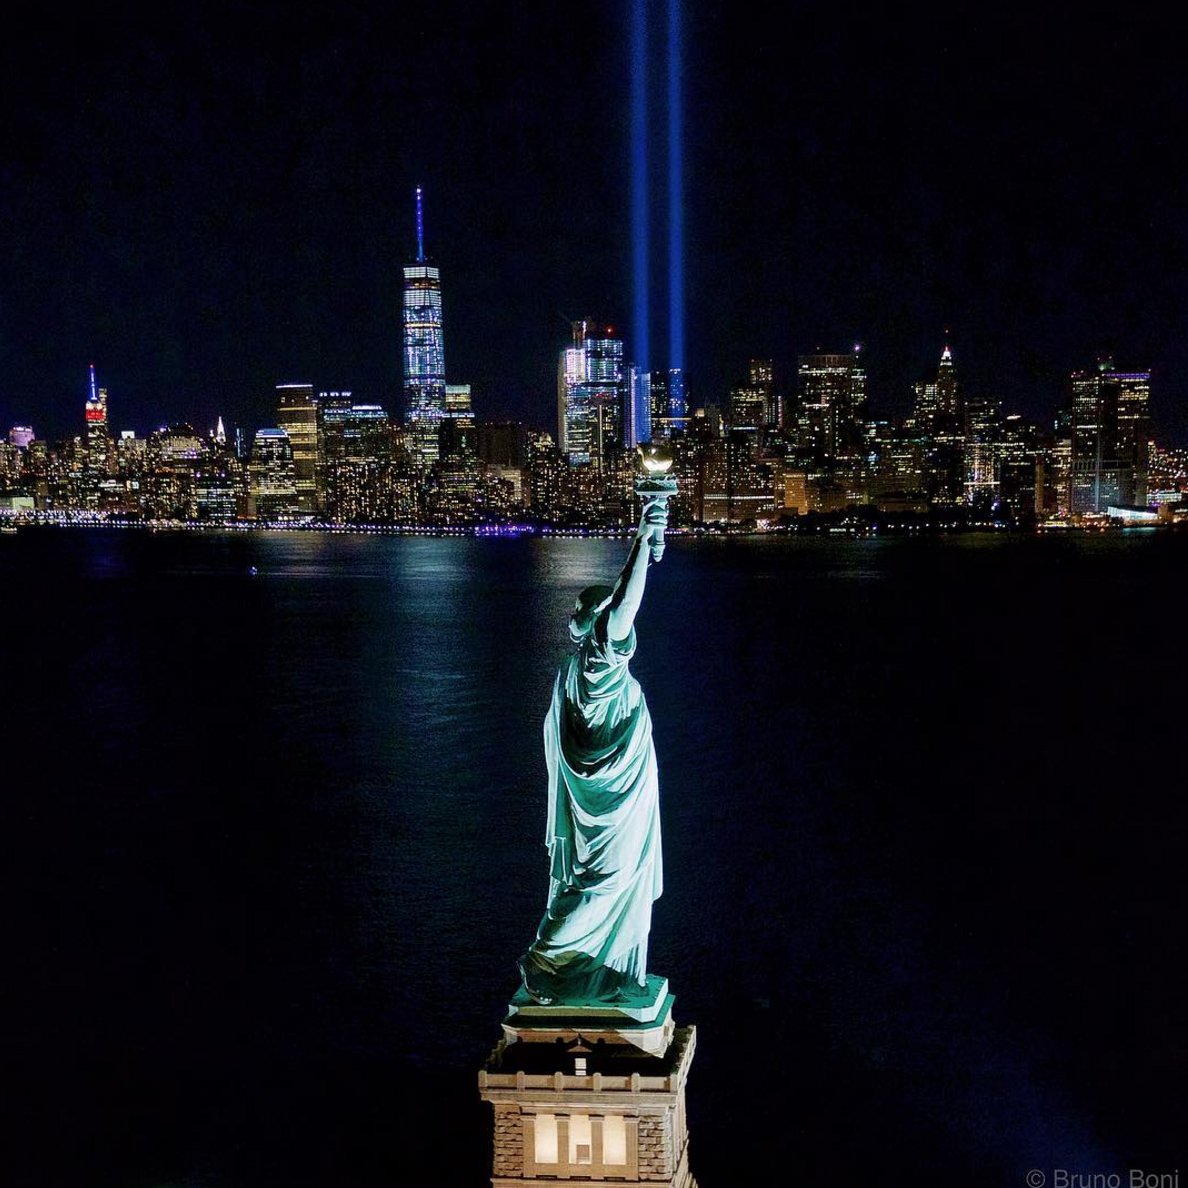 Fifteen years later, a tribute in the sky for the victims of 9/11. #TributeInLight #NeverForget   : @brunoboni<br>http://pic.twitter.com/wSeaiKADLC